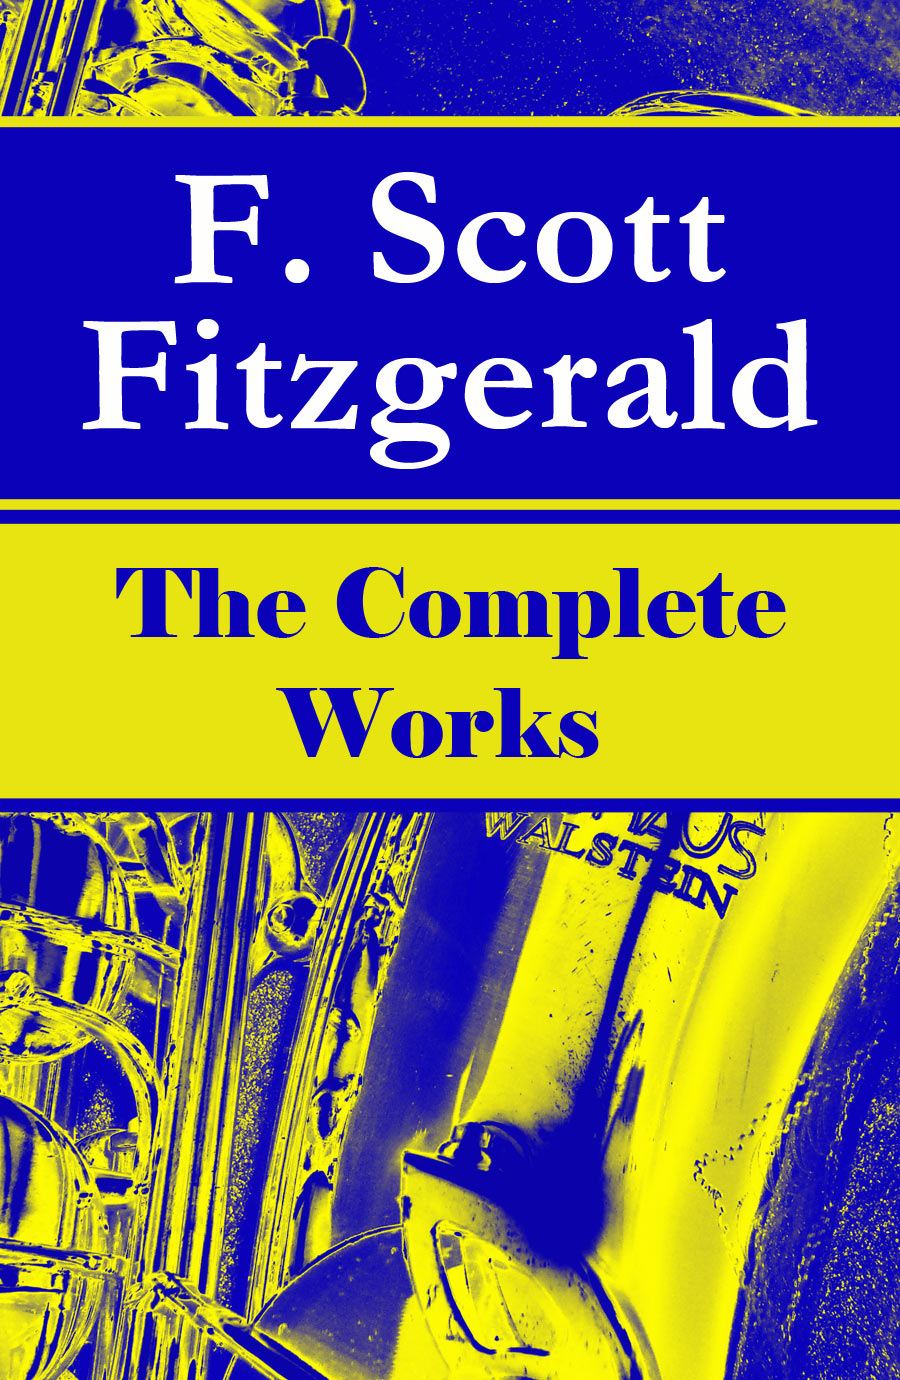 F. Scott Fitzgerald The Complete Works of F. Scott Fitzgerald: The Great Gatsby, Tender Is the Night, This Side of Paradise, The Curious Case of Benjamin Button, The Beautiful and Damned, The Love of the Last Tycoon and many more stories…